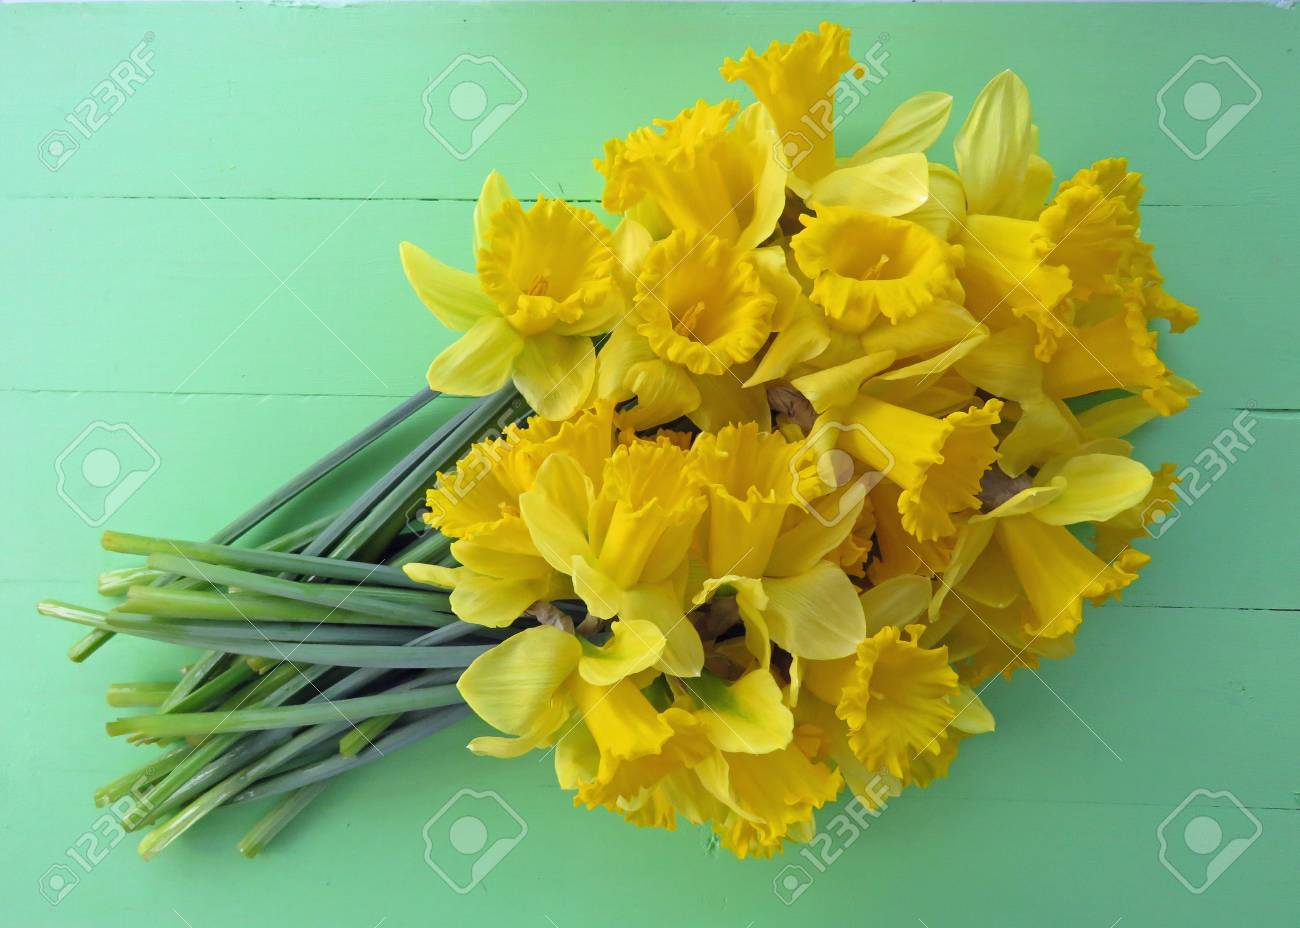 Large bunch of Spring daffodils against a bright green wooden  background. Space for text. Standard-Bild - 81878199